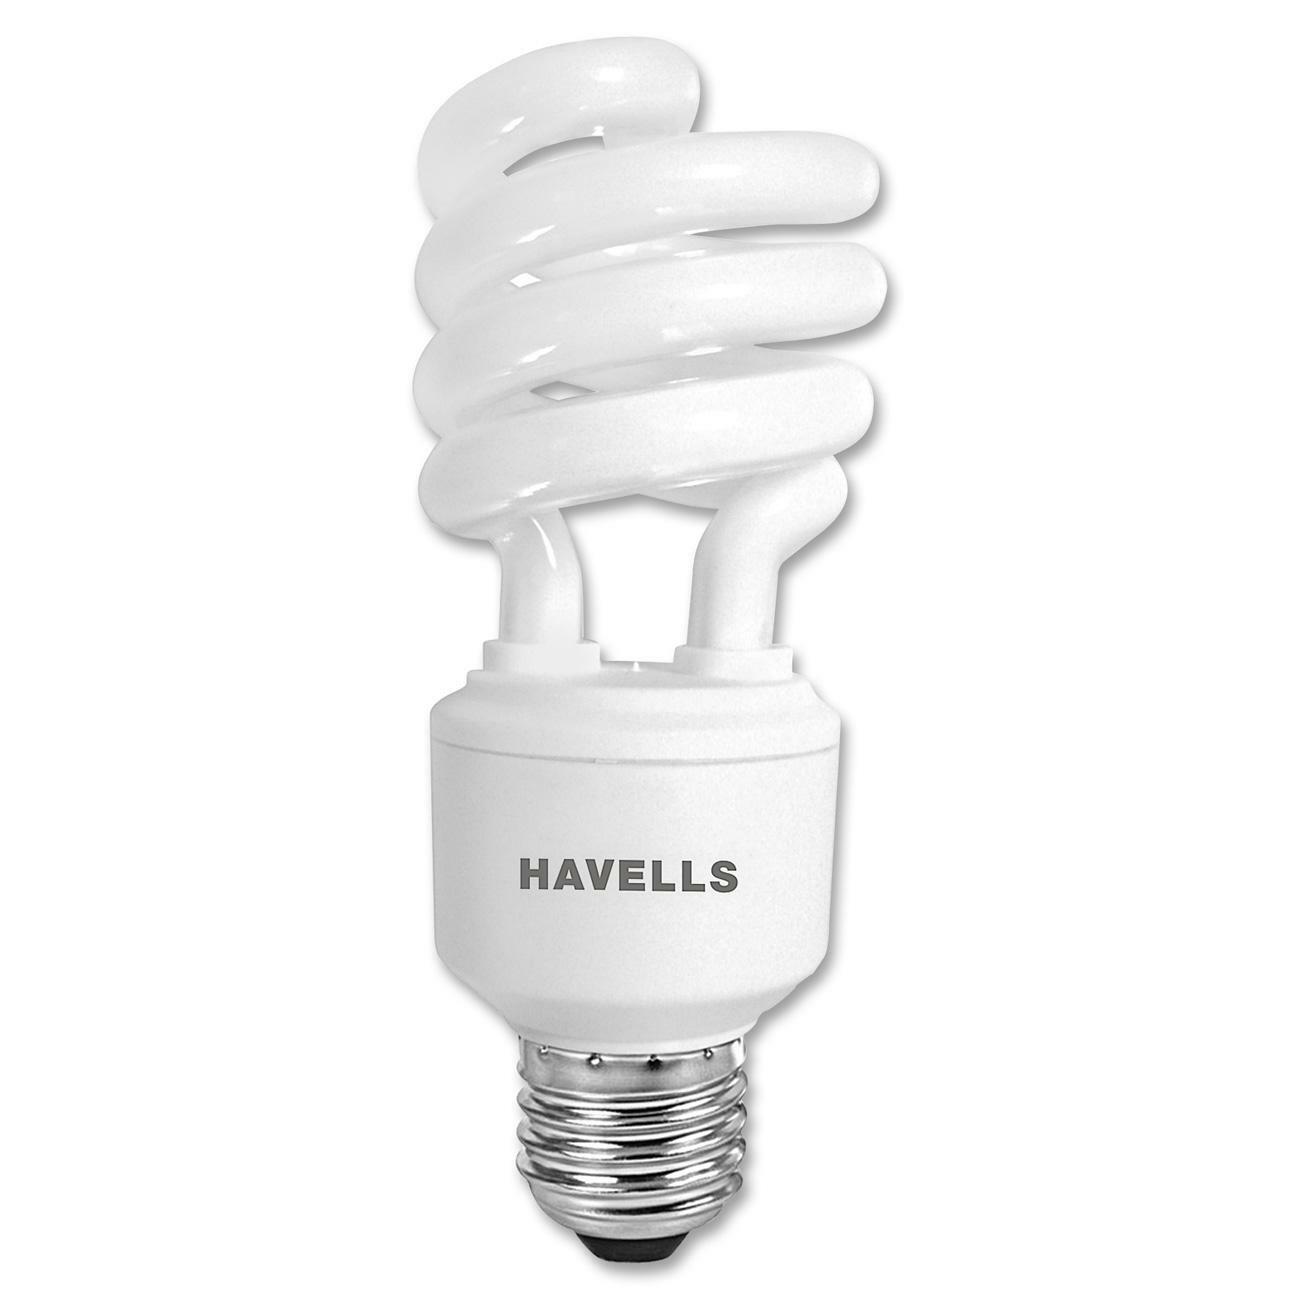 Havells 23W Spiral Compact Fluorescent Bulb